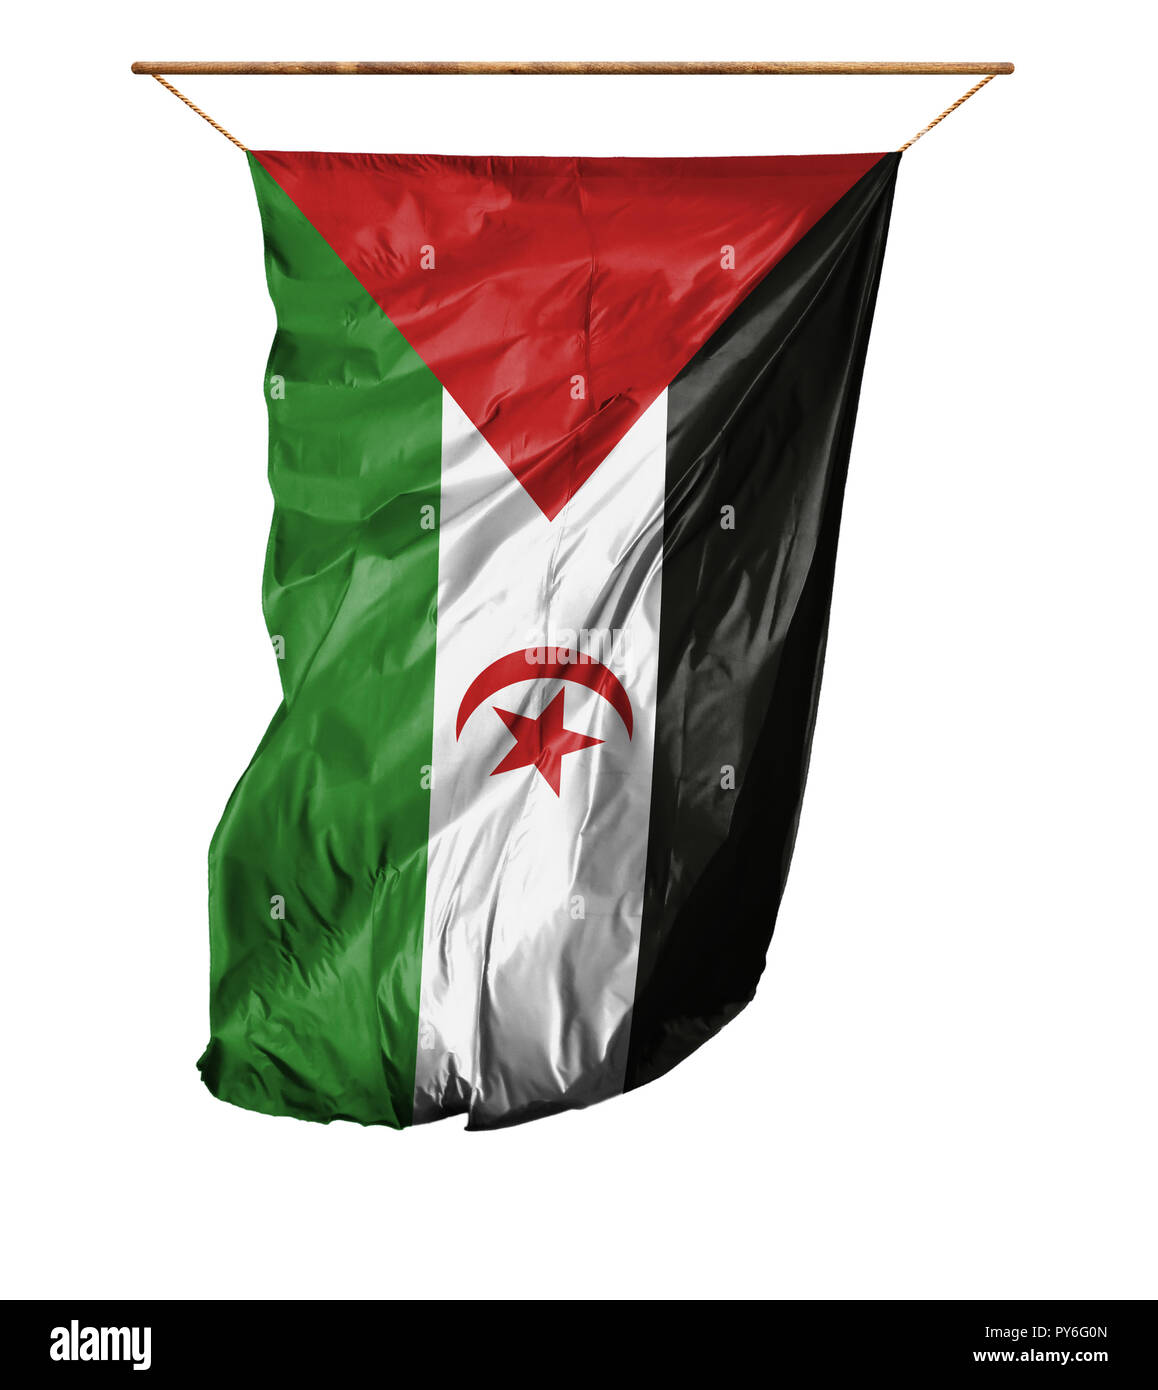 Flag of Western Sahara. Vertical flag.Isolated on a white background. Stock Photo